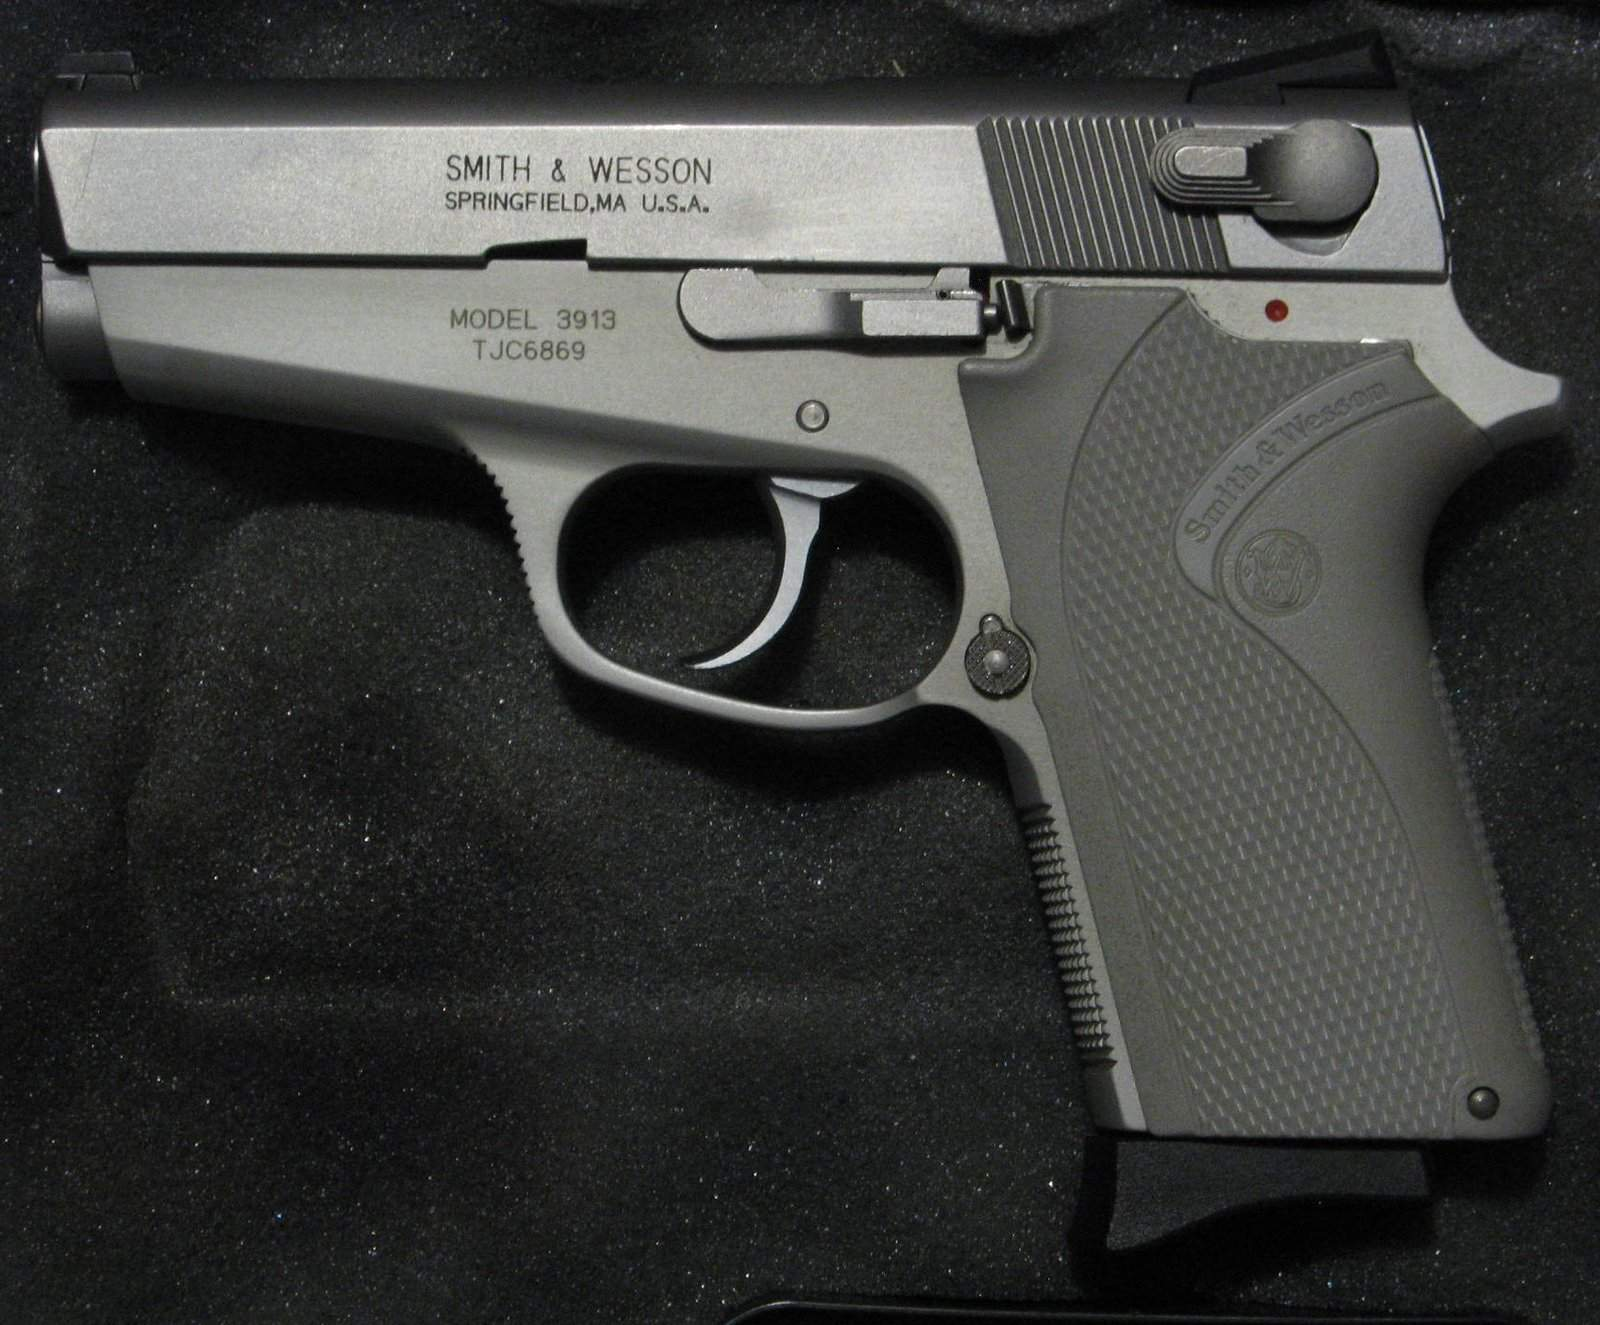 WTS OR - Smith & Wesson 3913 LS (LadySmith) Stainless 9MM